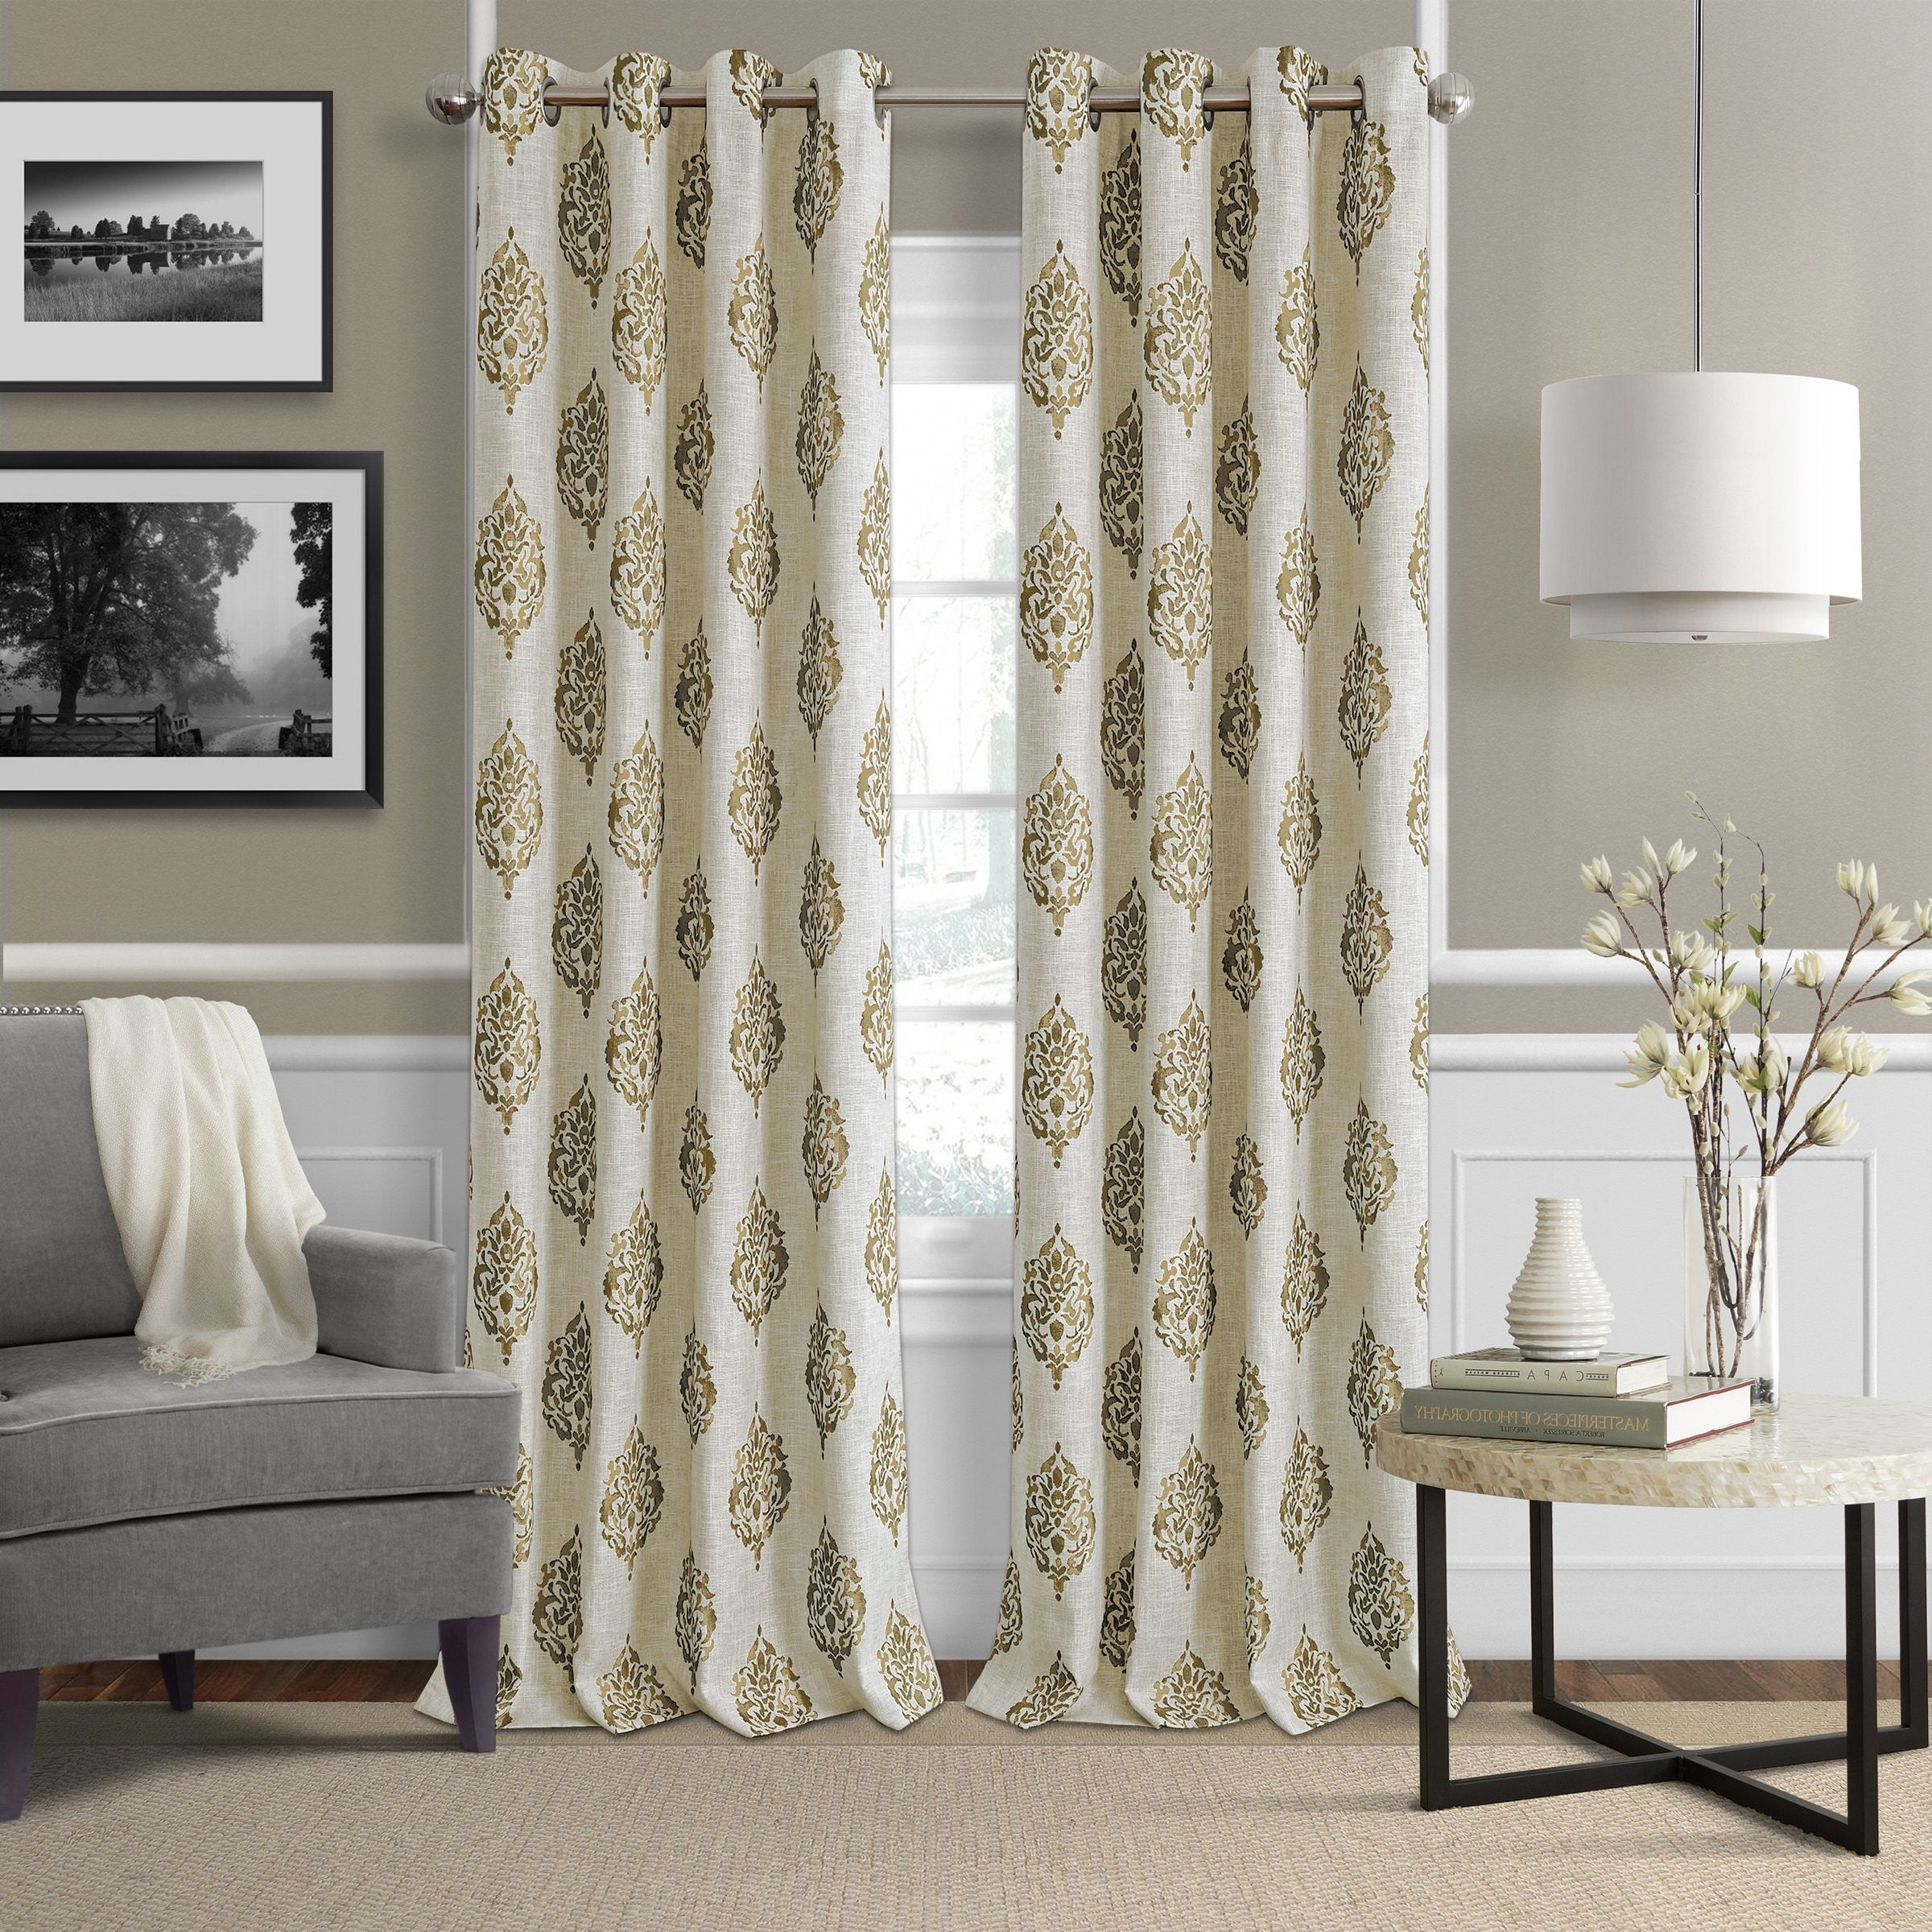 Panel Inside Primebeau Geometric Pattern Blackout Curtain Pairs (View 7 of 20)